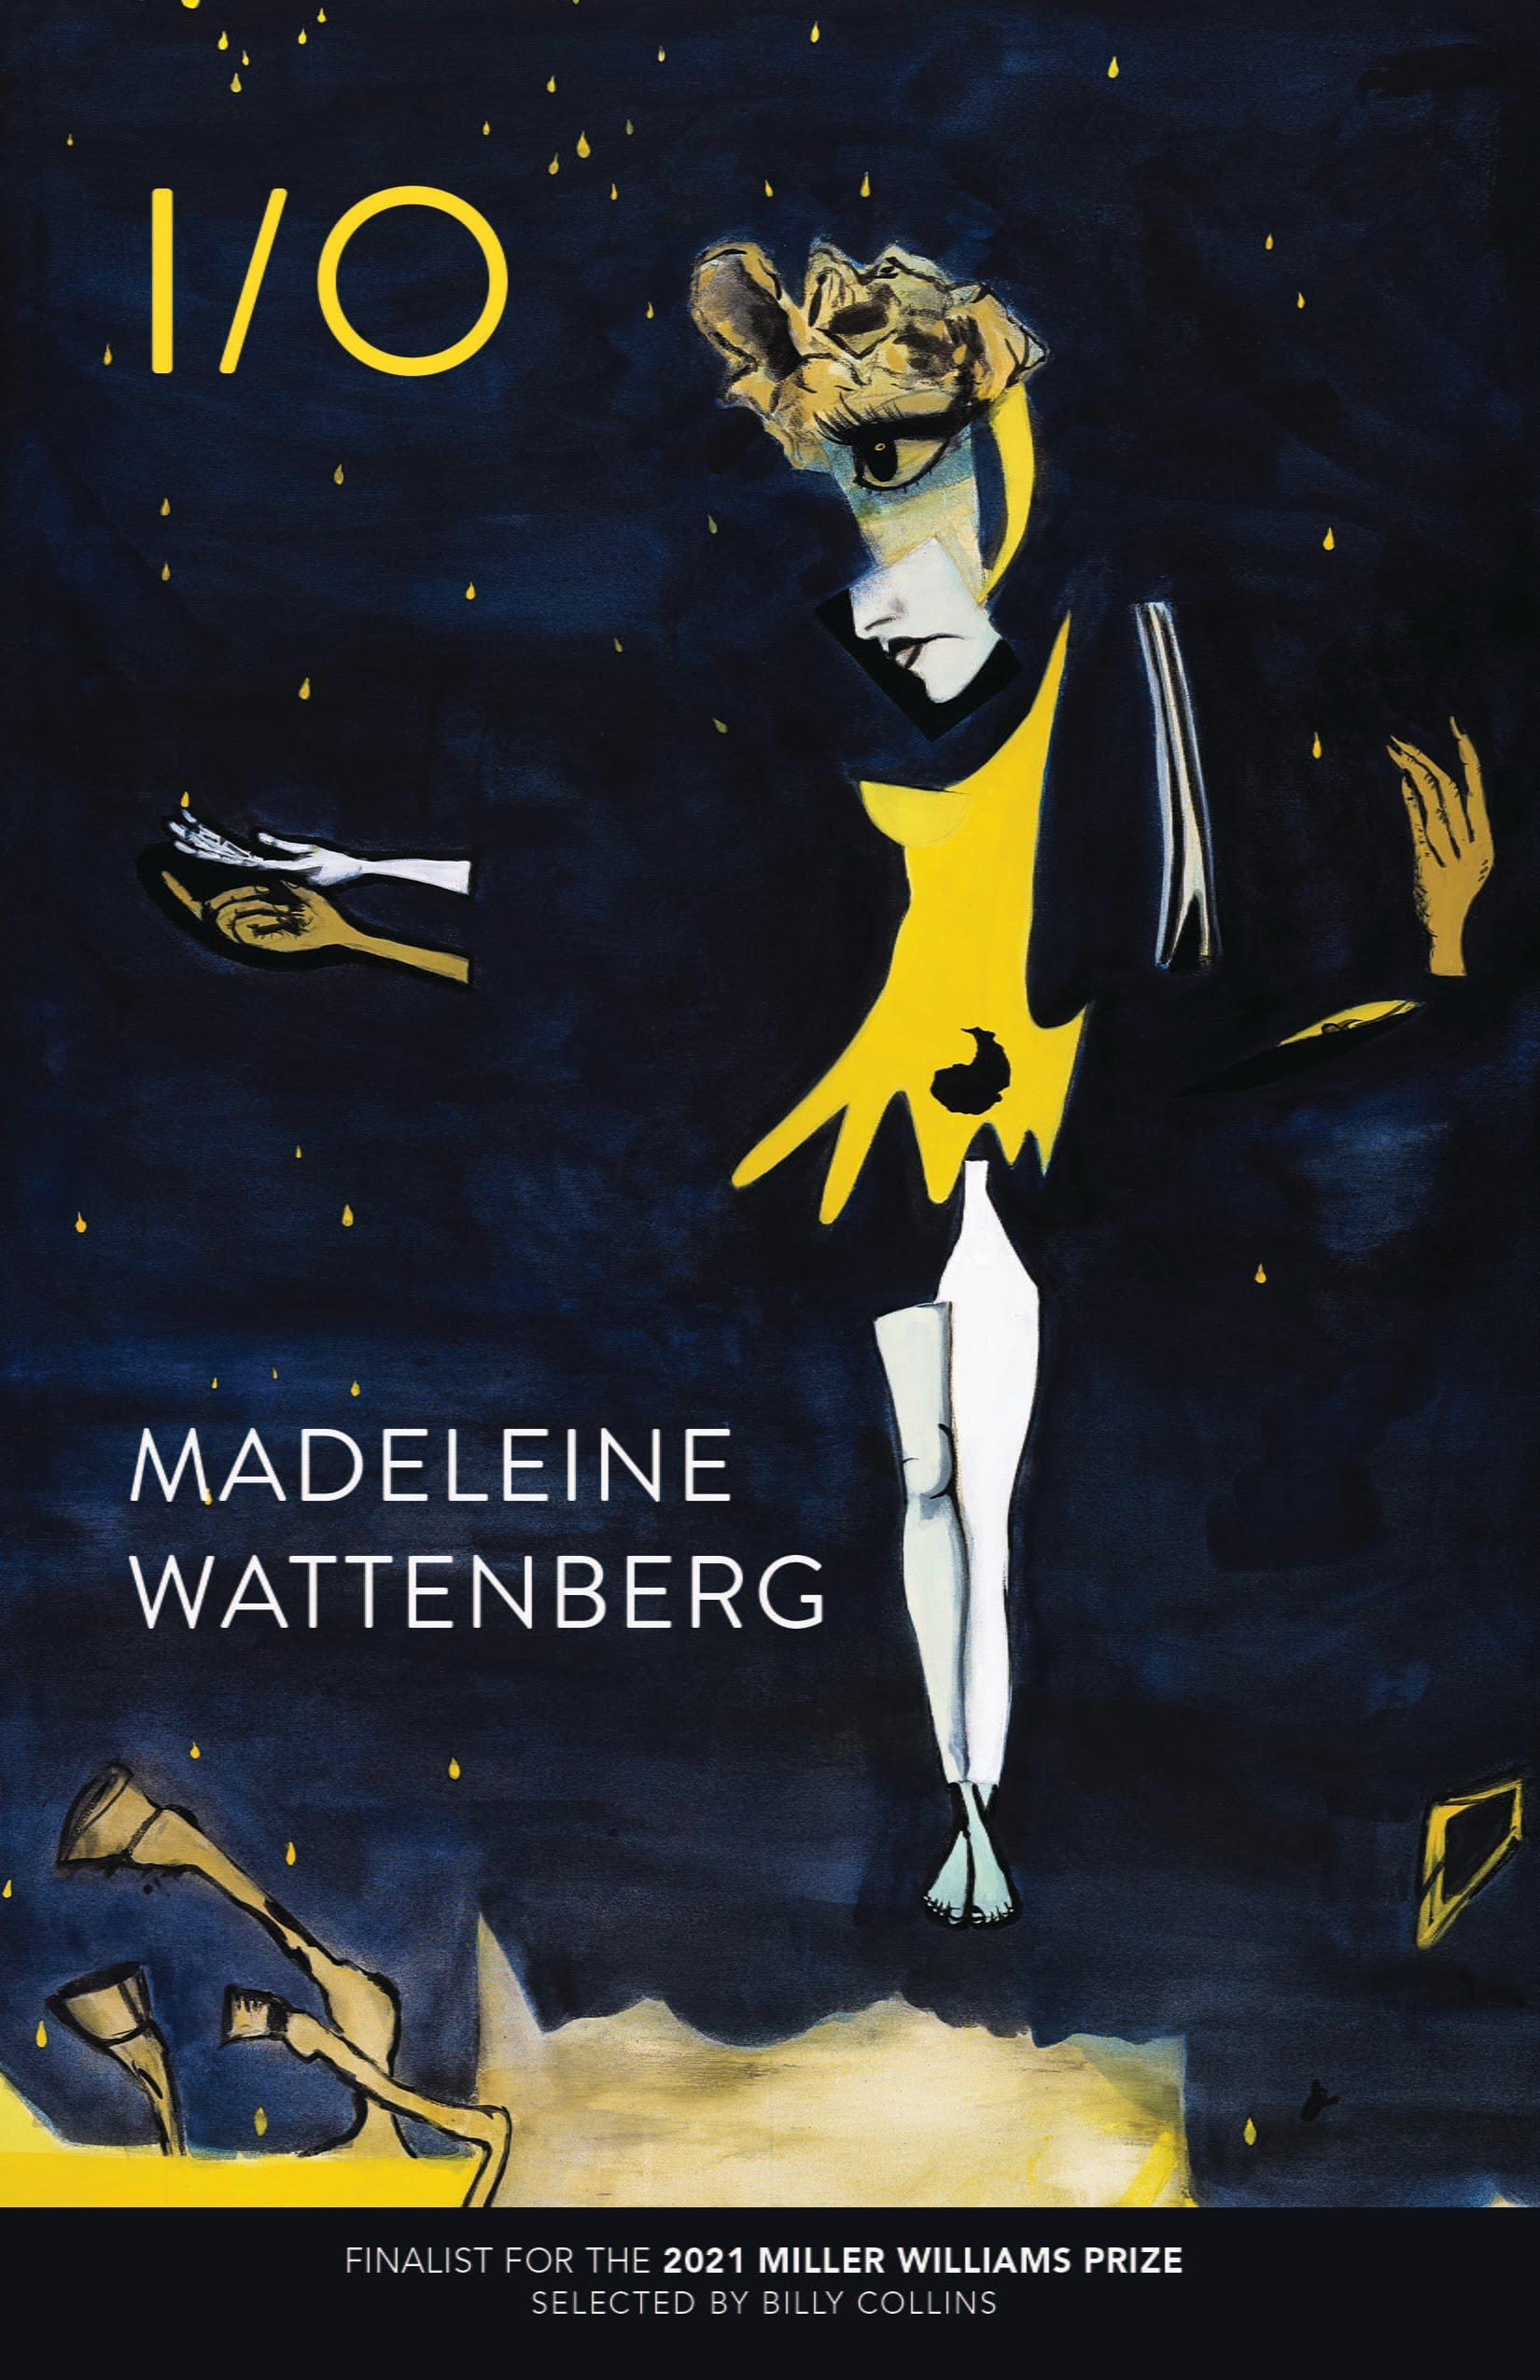 cover image for I/O by Madeleine Wattenberg